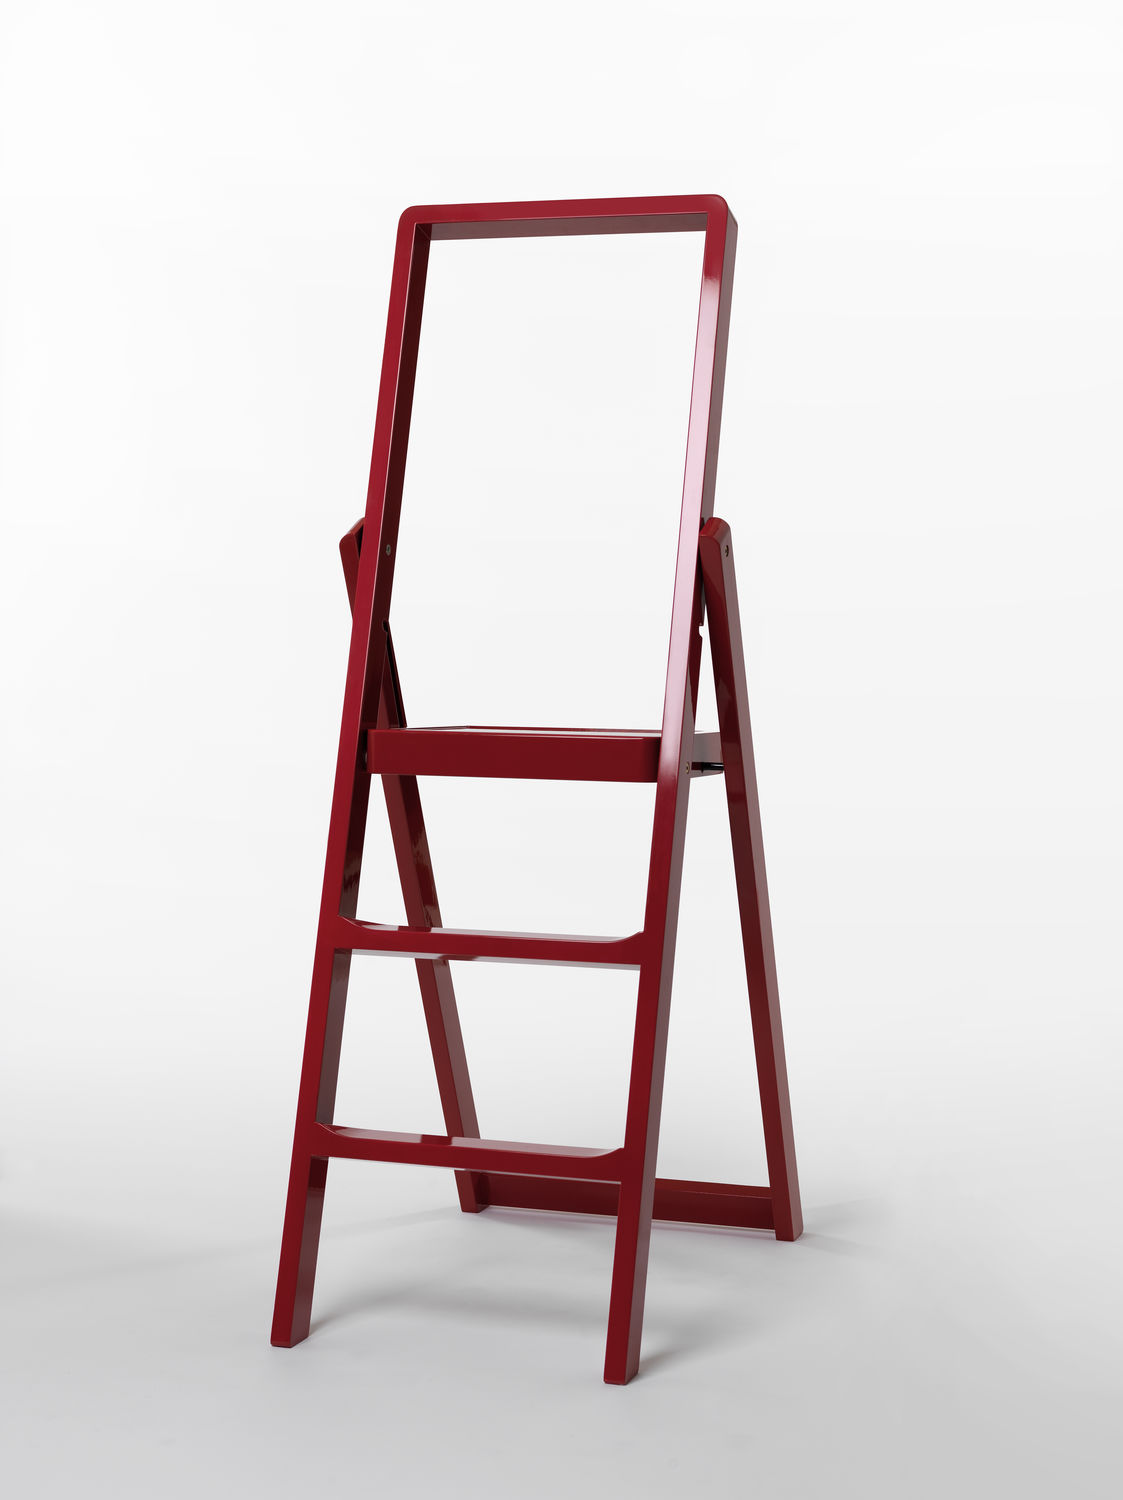 Commercial step ladder - by Karl Malmvall  sc 1 st  ArchiExpo & Commercial step ladder - by Karl Malmvall - DESIGN HOUSE STOCKHOLM islam-shia.org